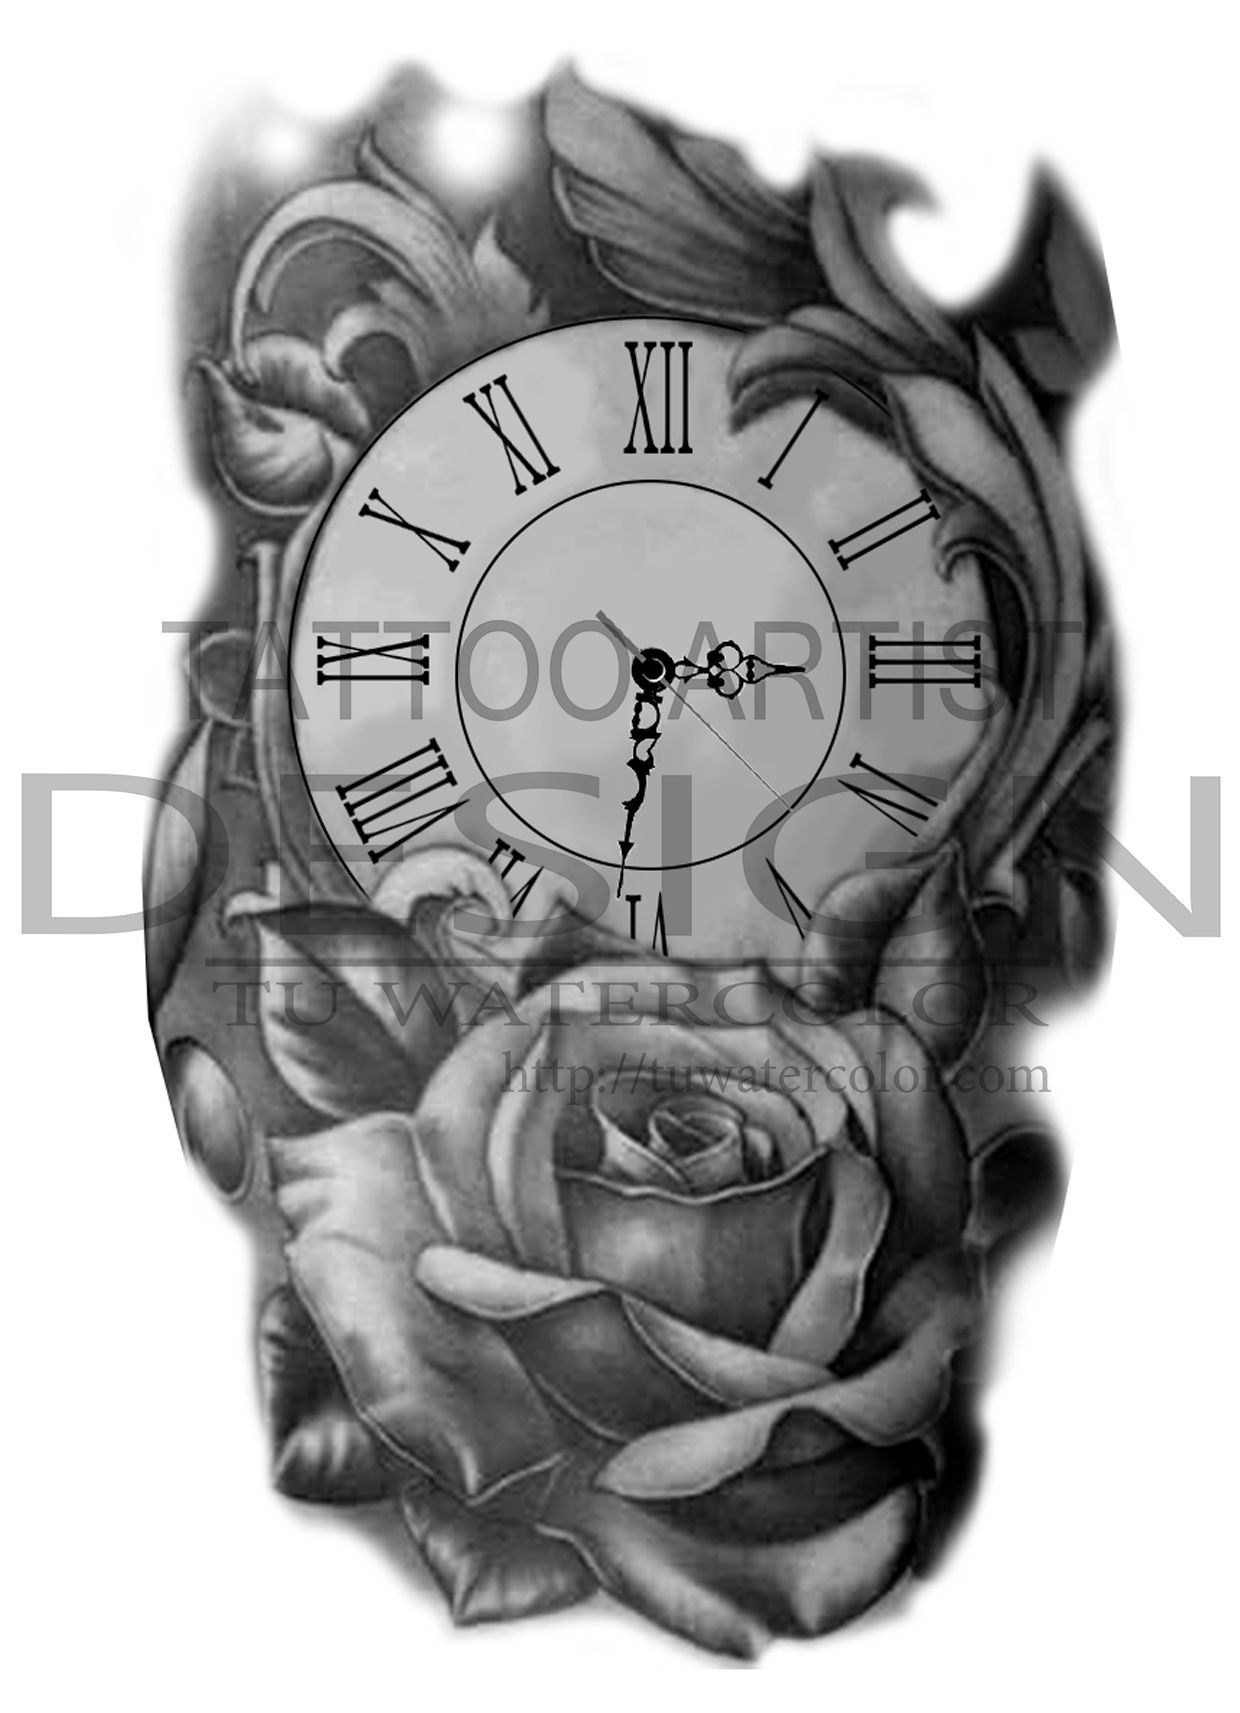 clock rose design t watercolor oclock pinterest tattoos tattoo designs and p tattoo. Black Bedroom Furniture Sets. Home Design Ideas